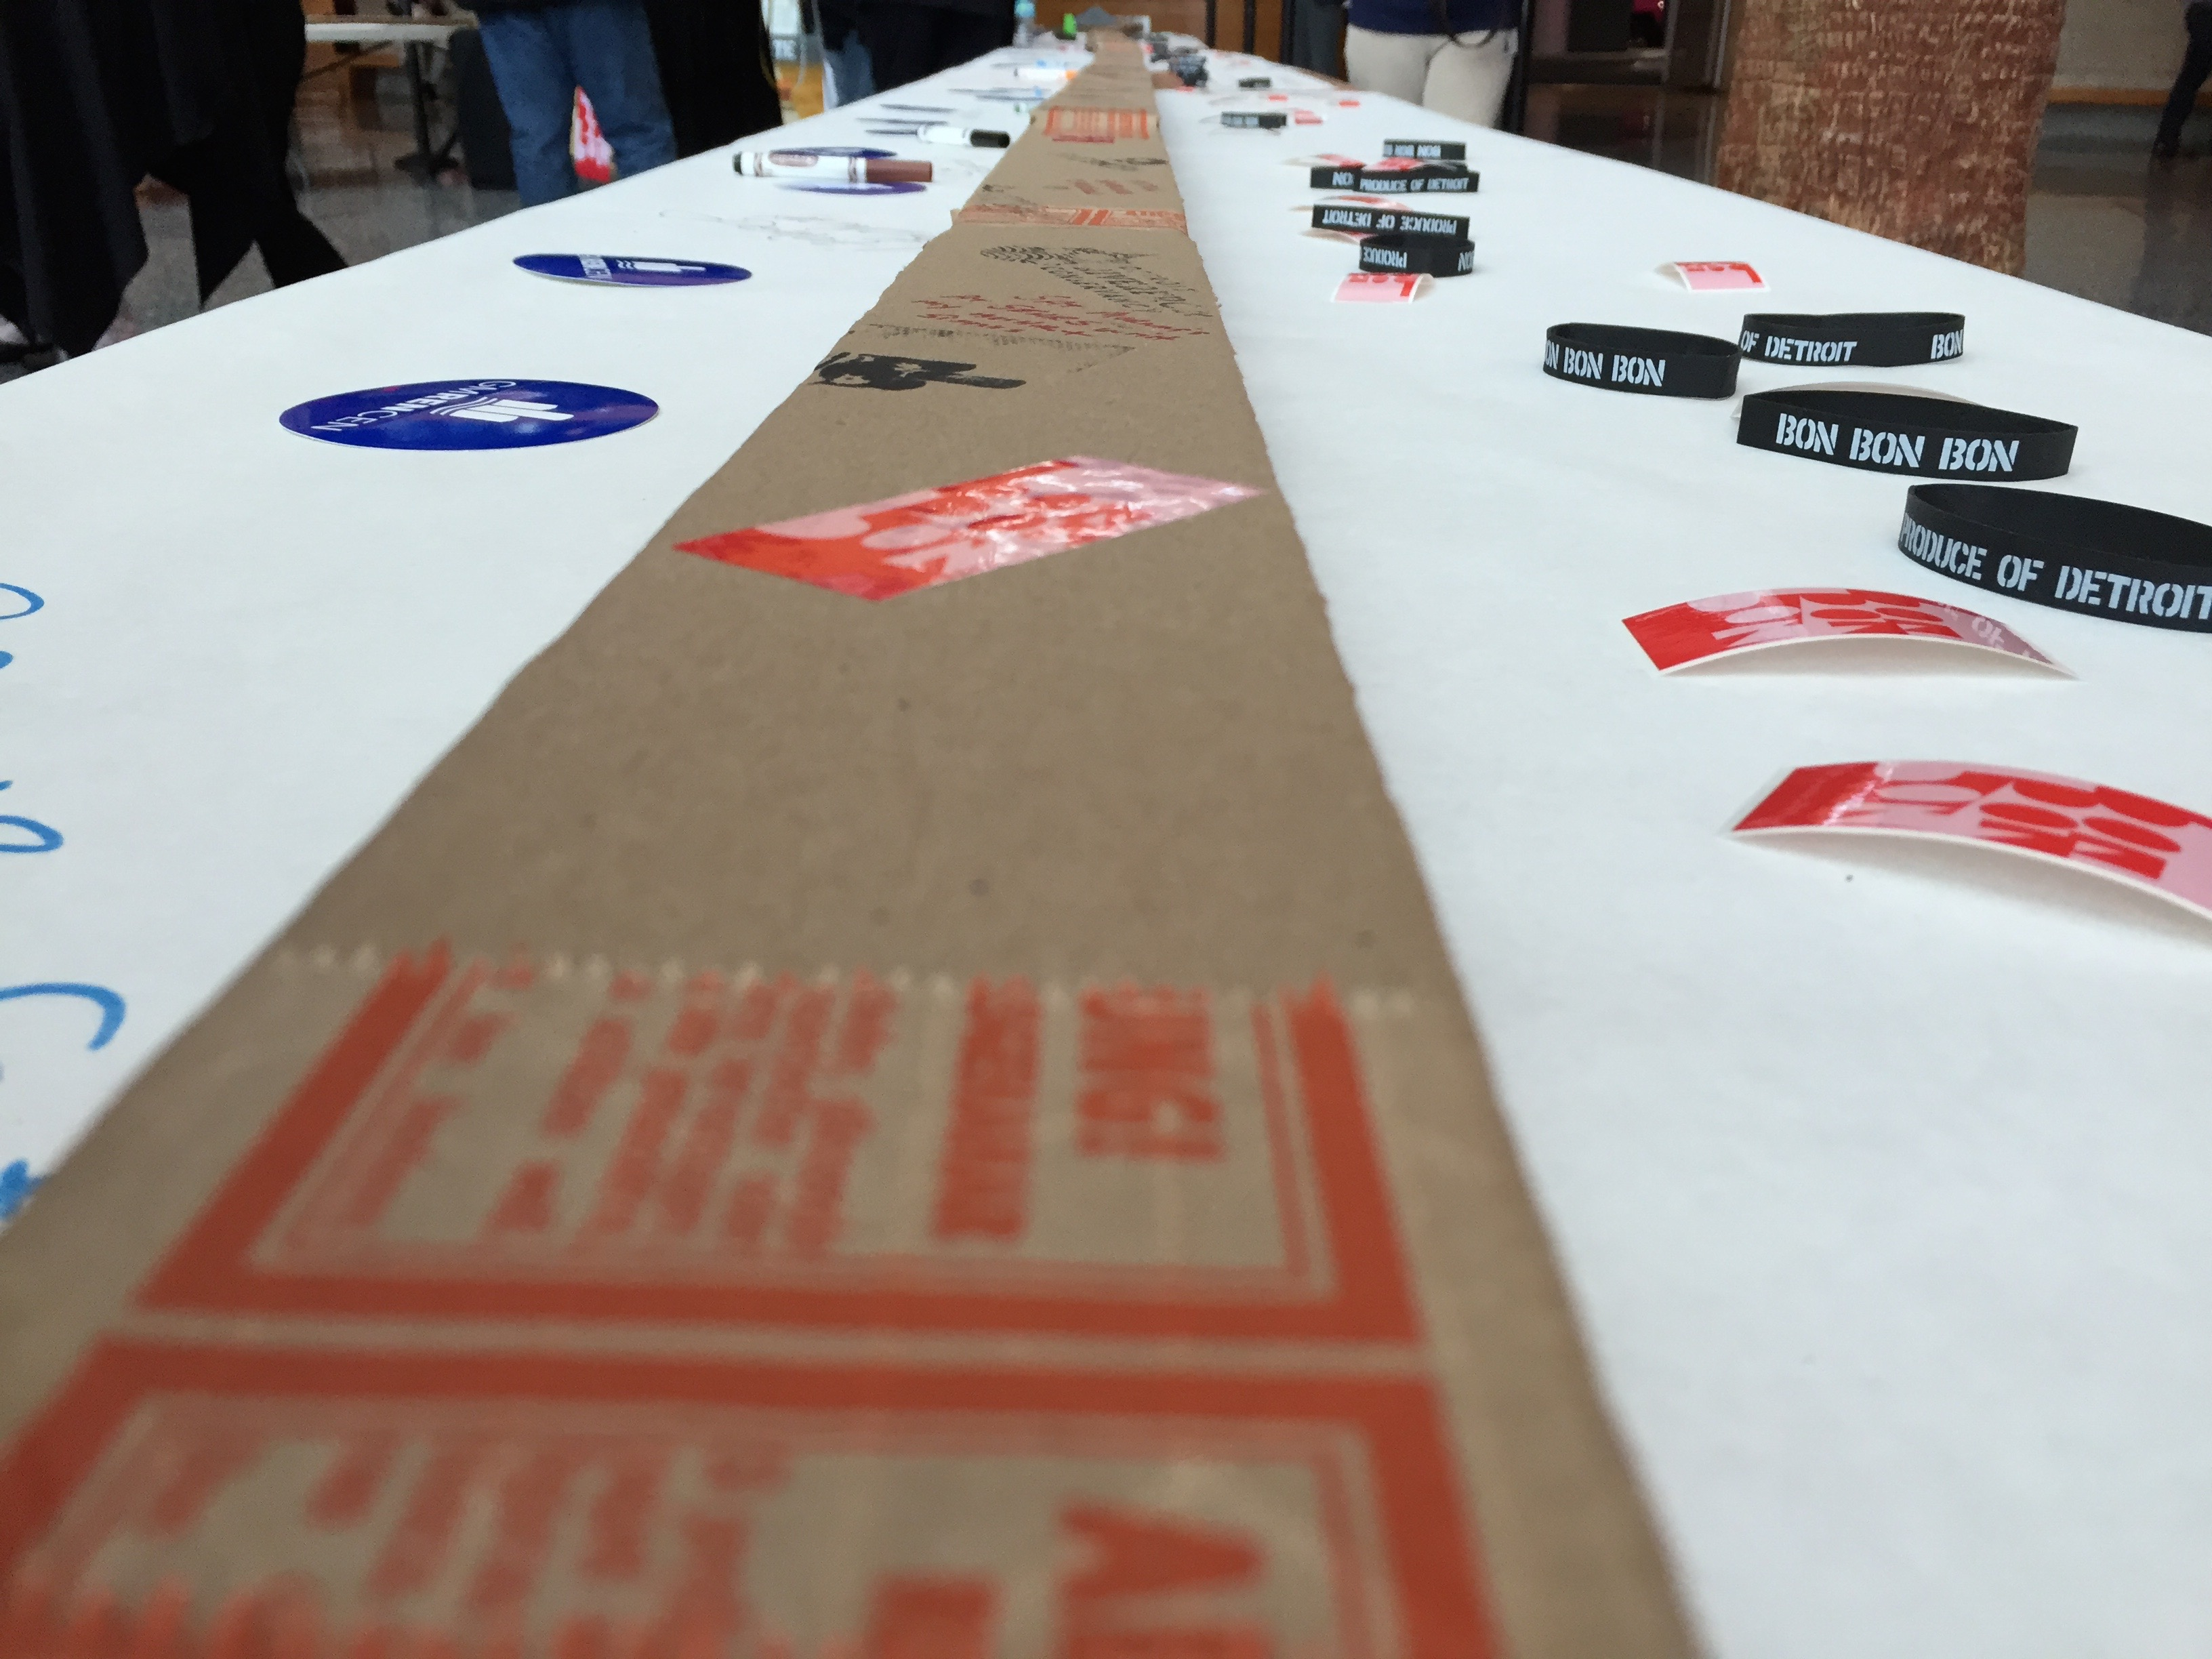 A long card board box on a table with white paper going into the distance